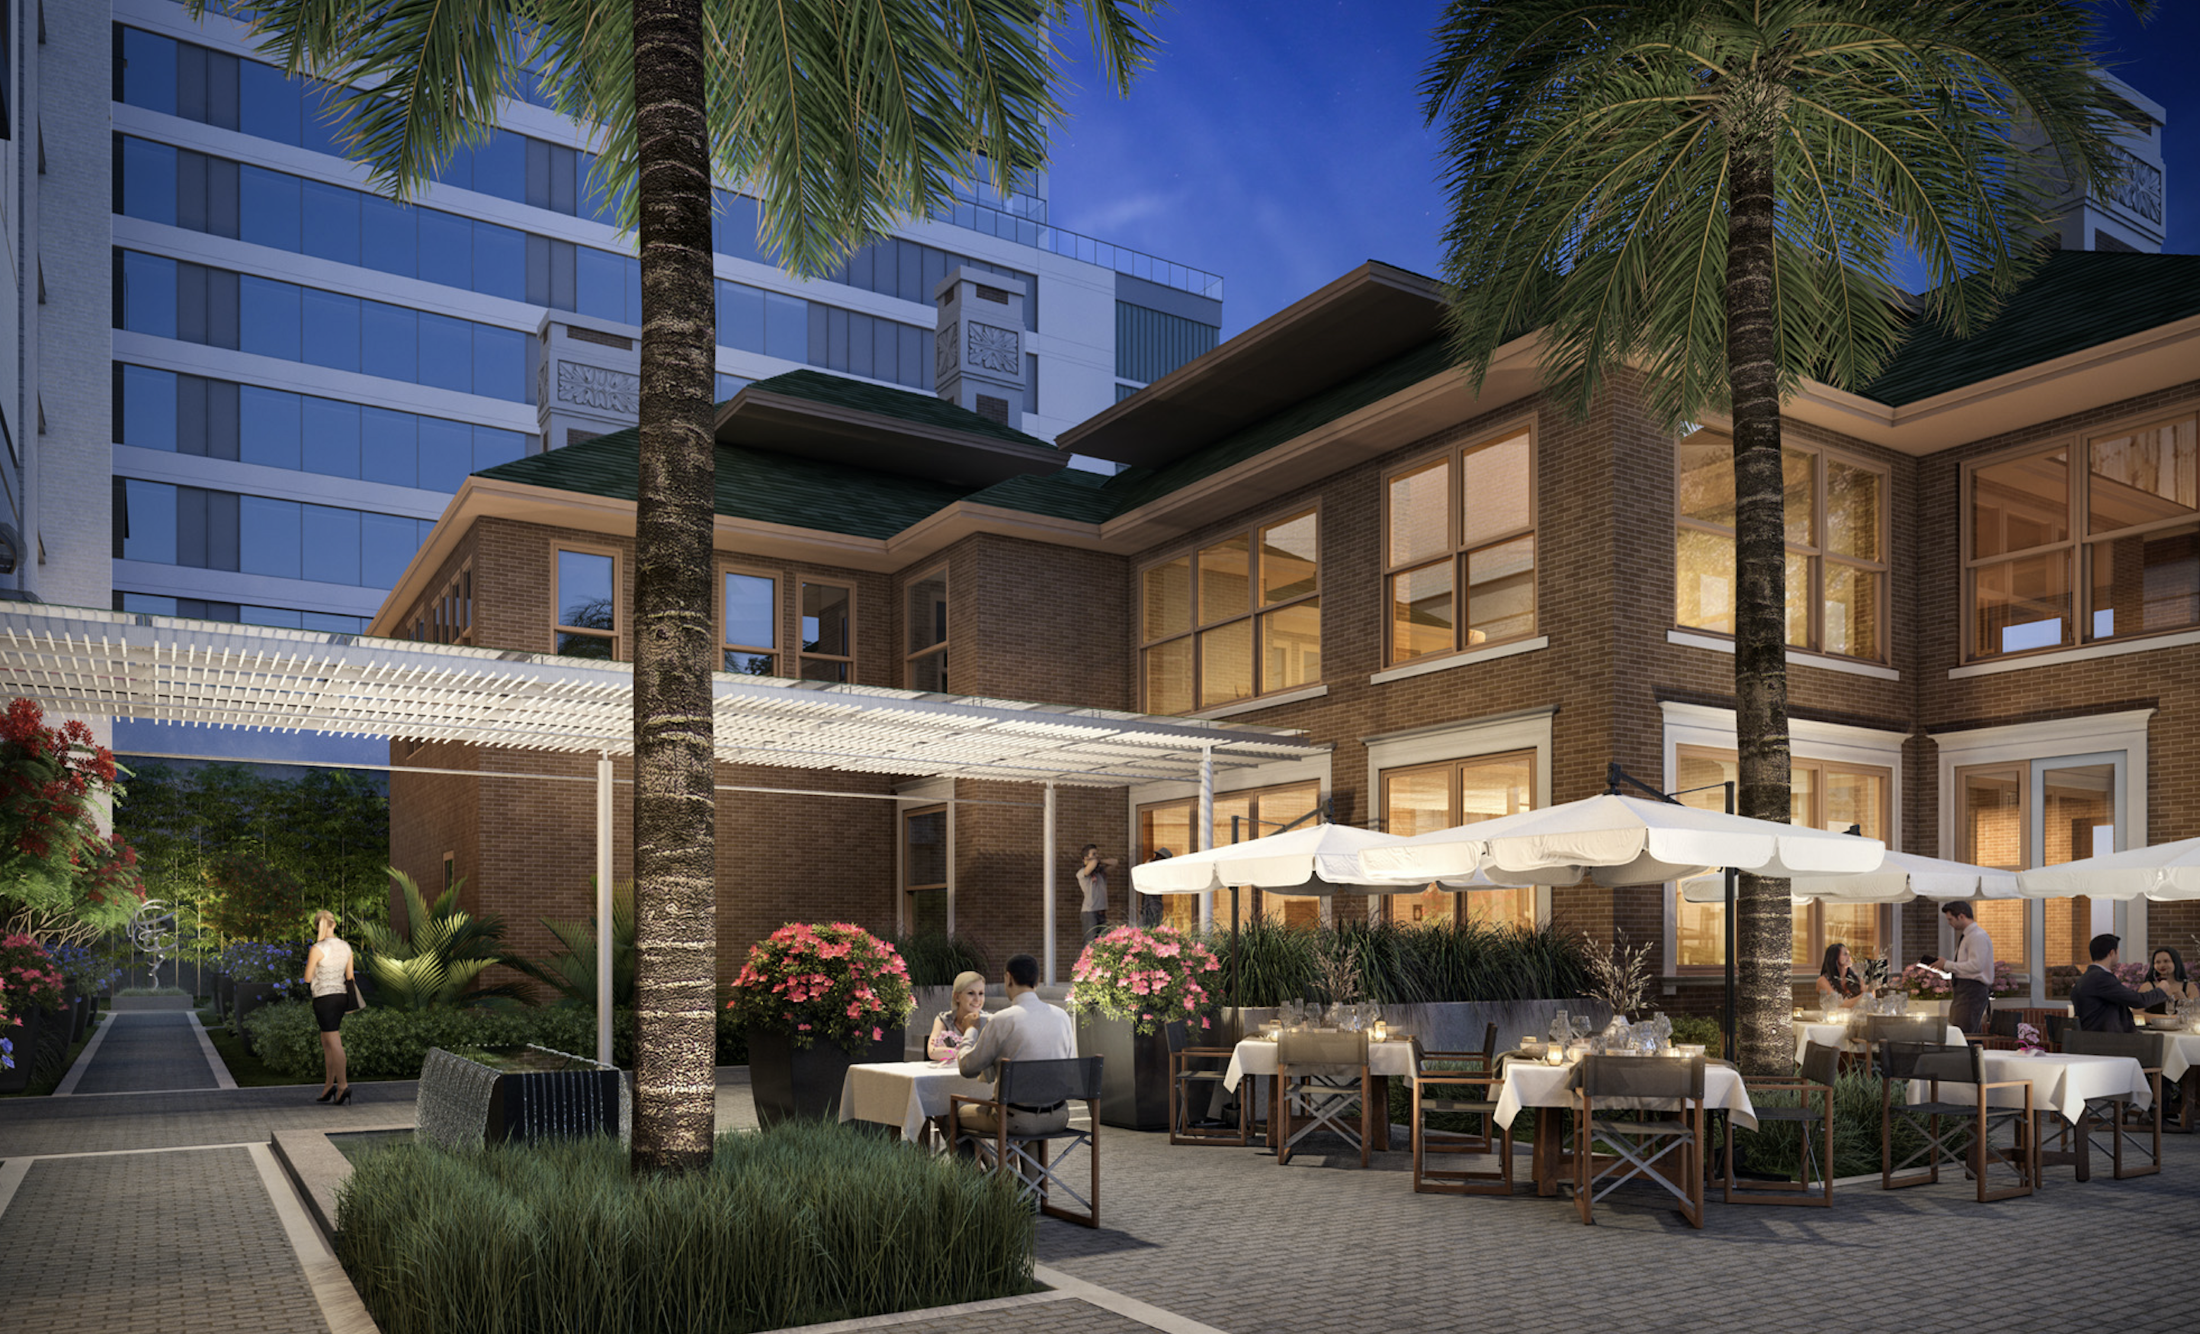 Al fresco dining at the refreshed La Colombe d'Or Hotel, reopening Fall 2020 in the heart of Montrose and the Houston Museum District. (Rendering courtesy of Munoz + Albin Architecture & Planning)